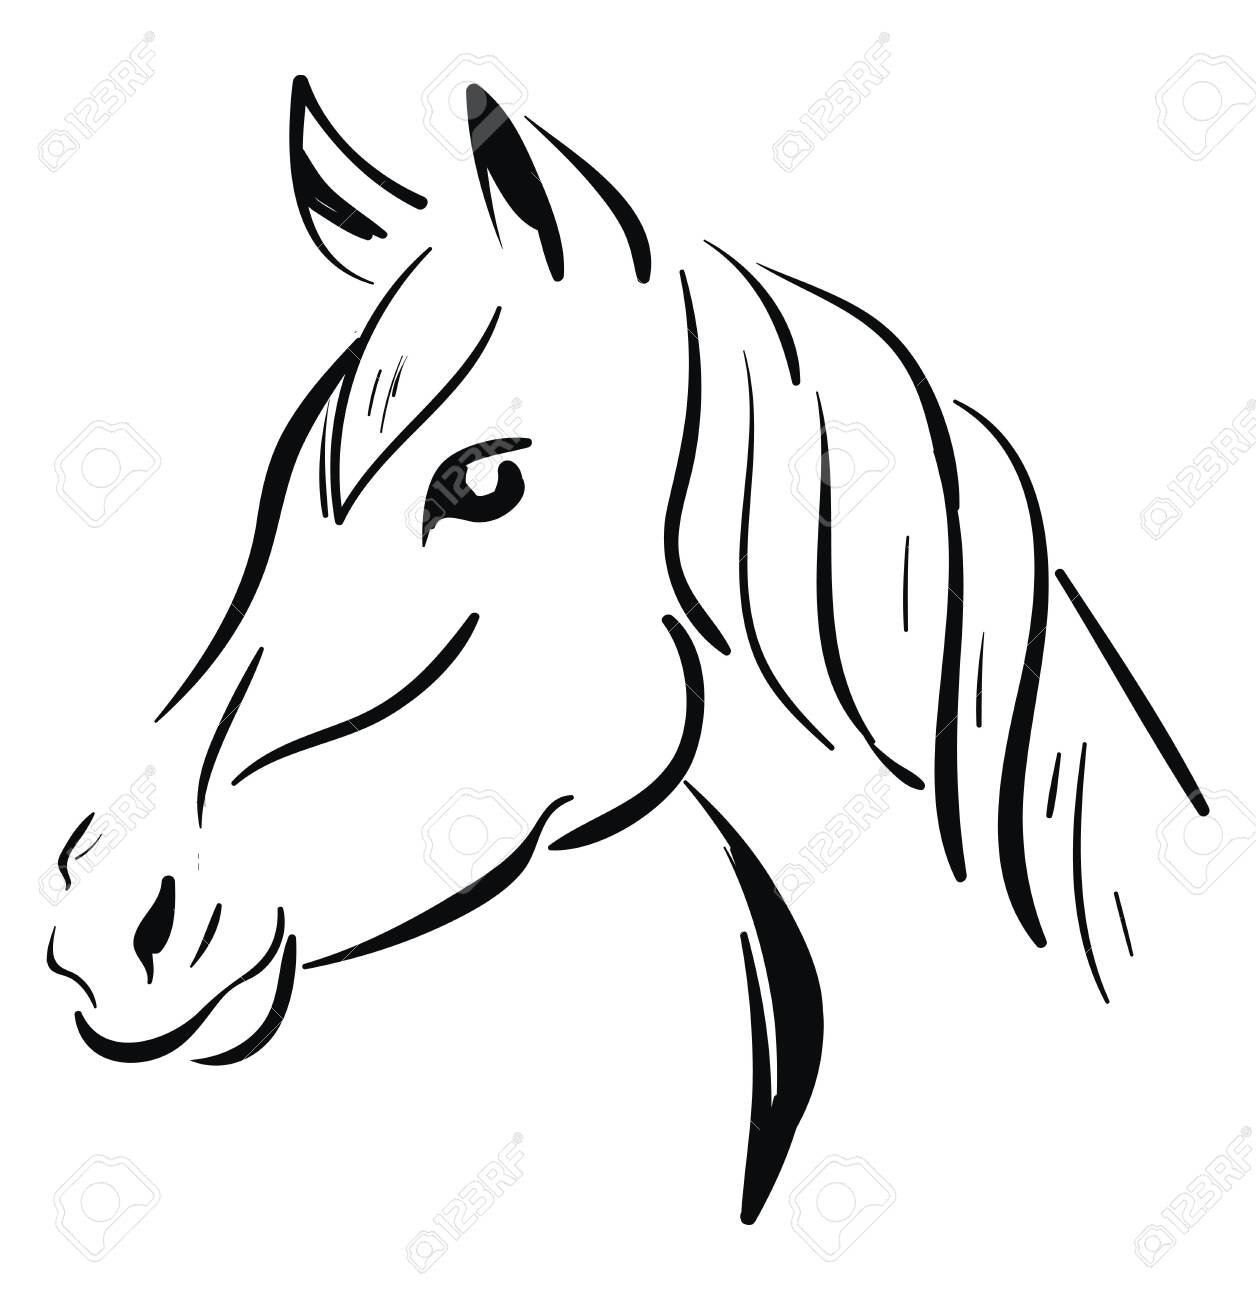 A Black Horse Sketch Vector Color Drawing Or Illustration Royalty Free Cliparts Vectors And Stock Illustration Image 132800103